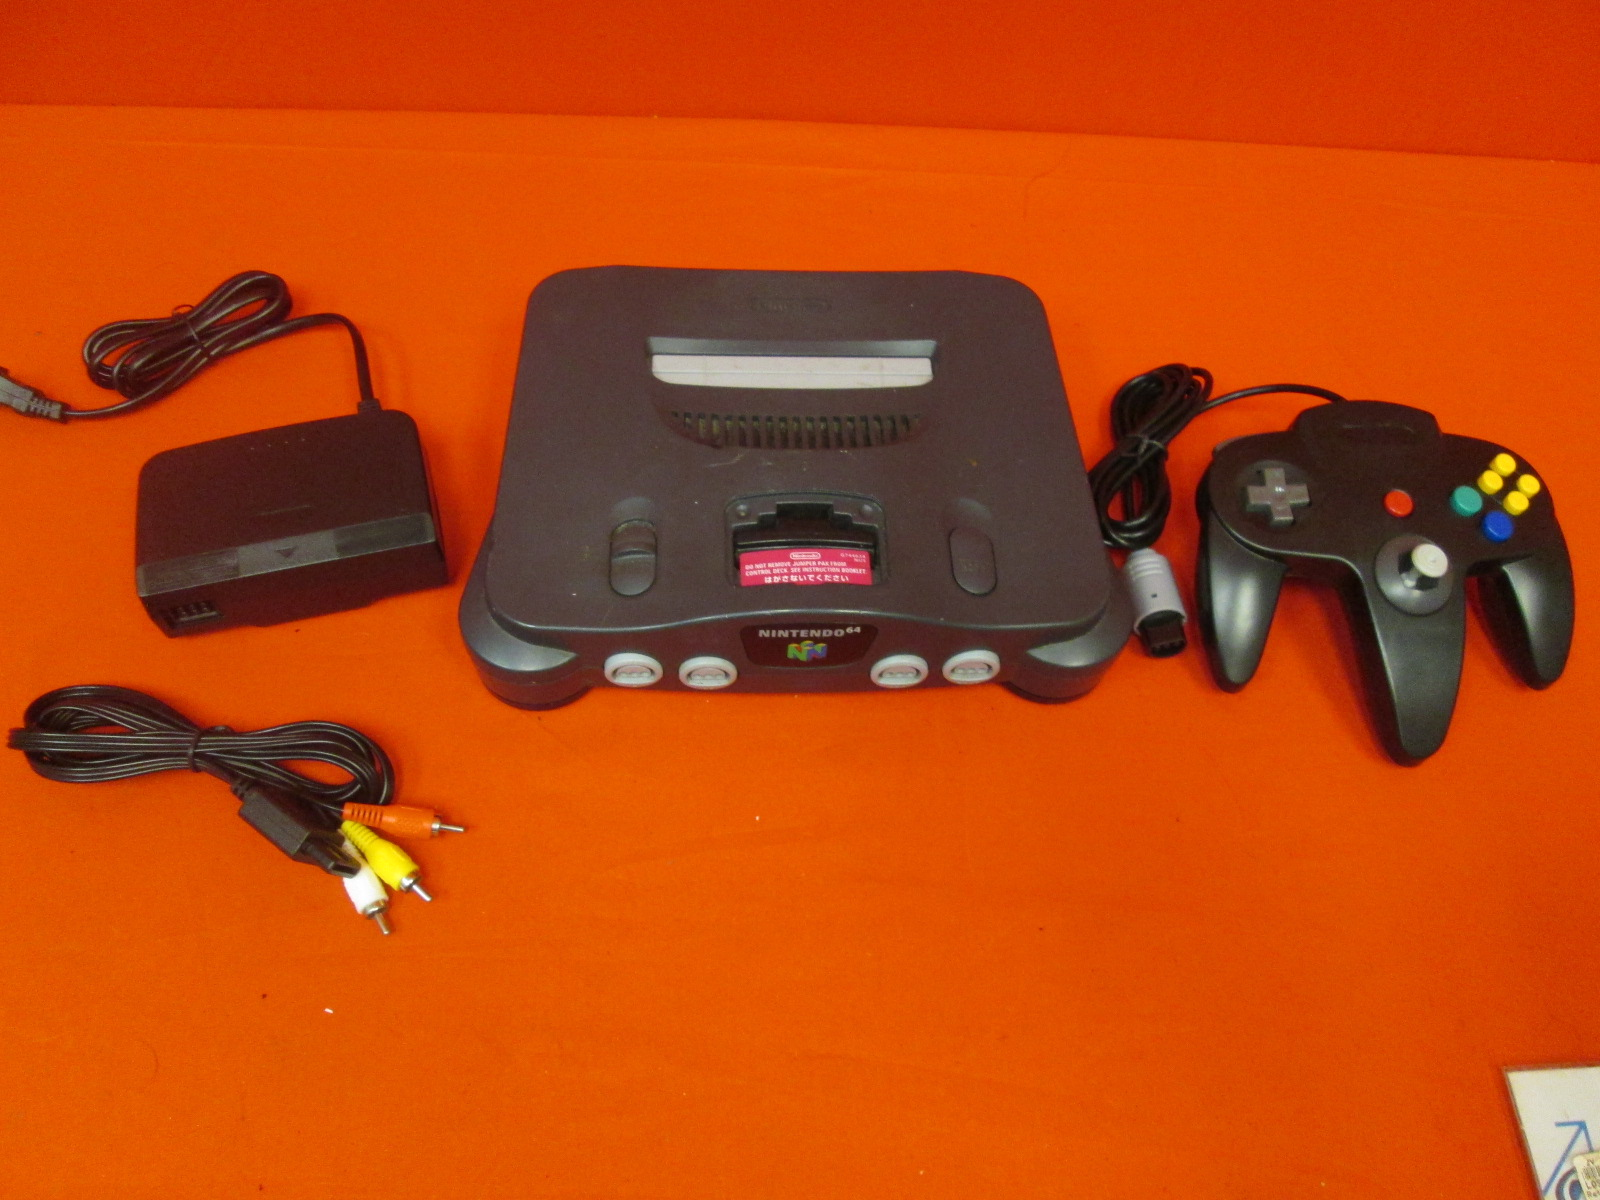 N64 Video Game Console And Controller